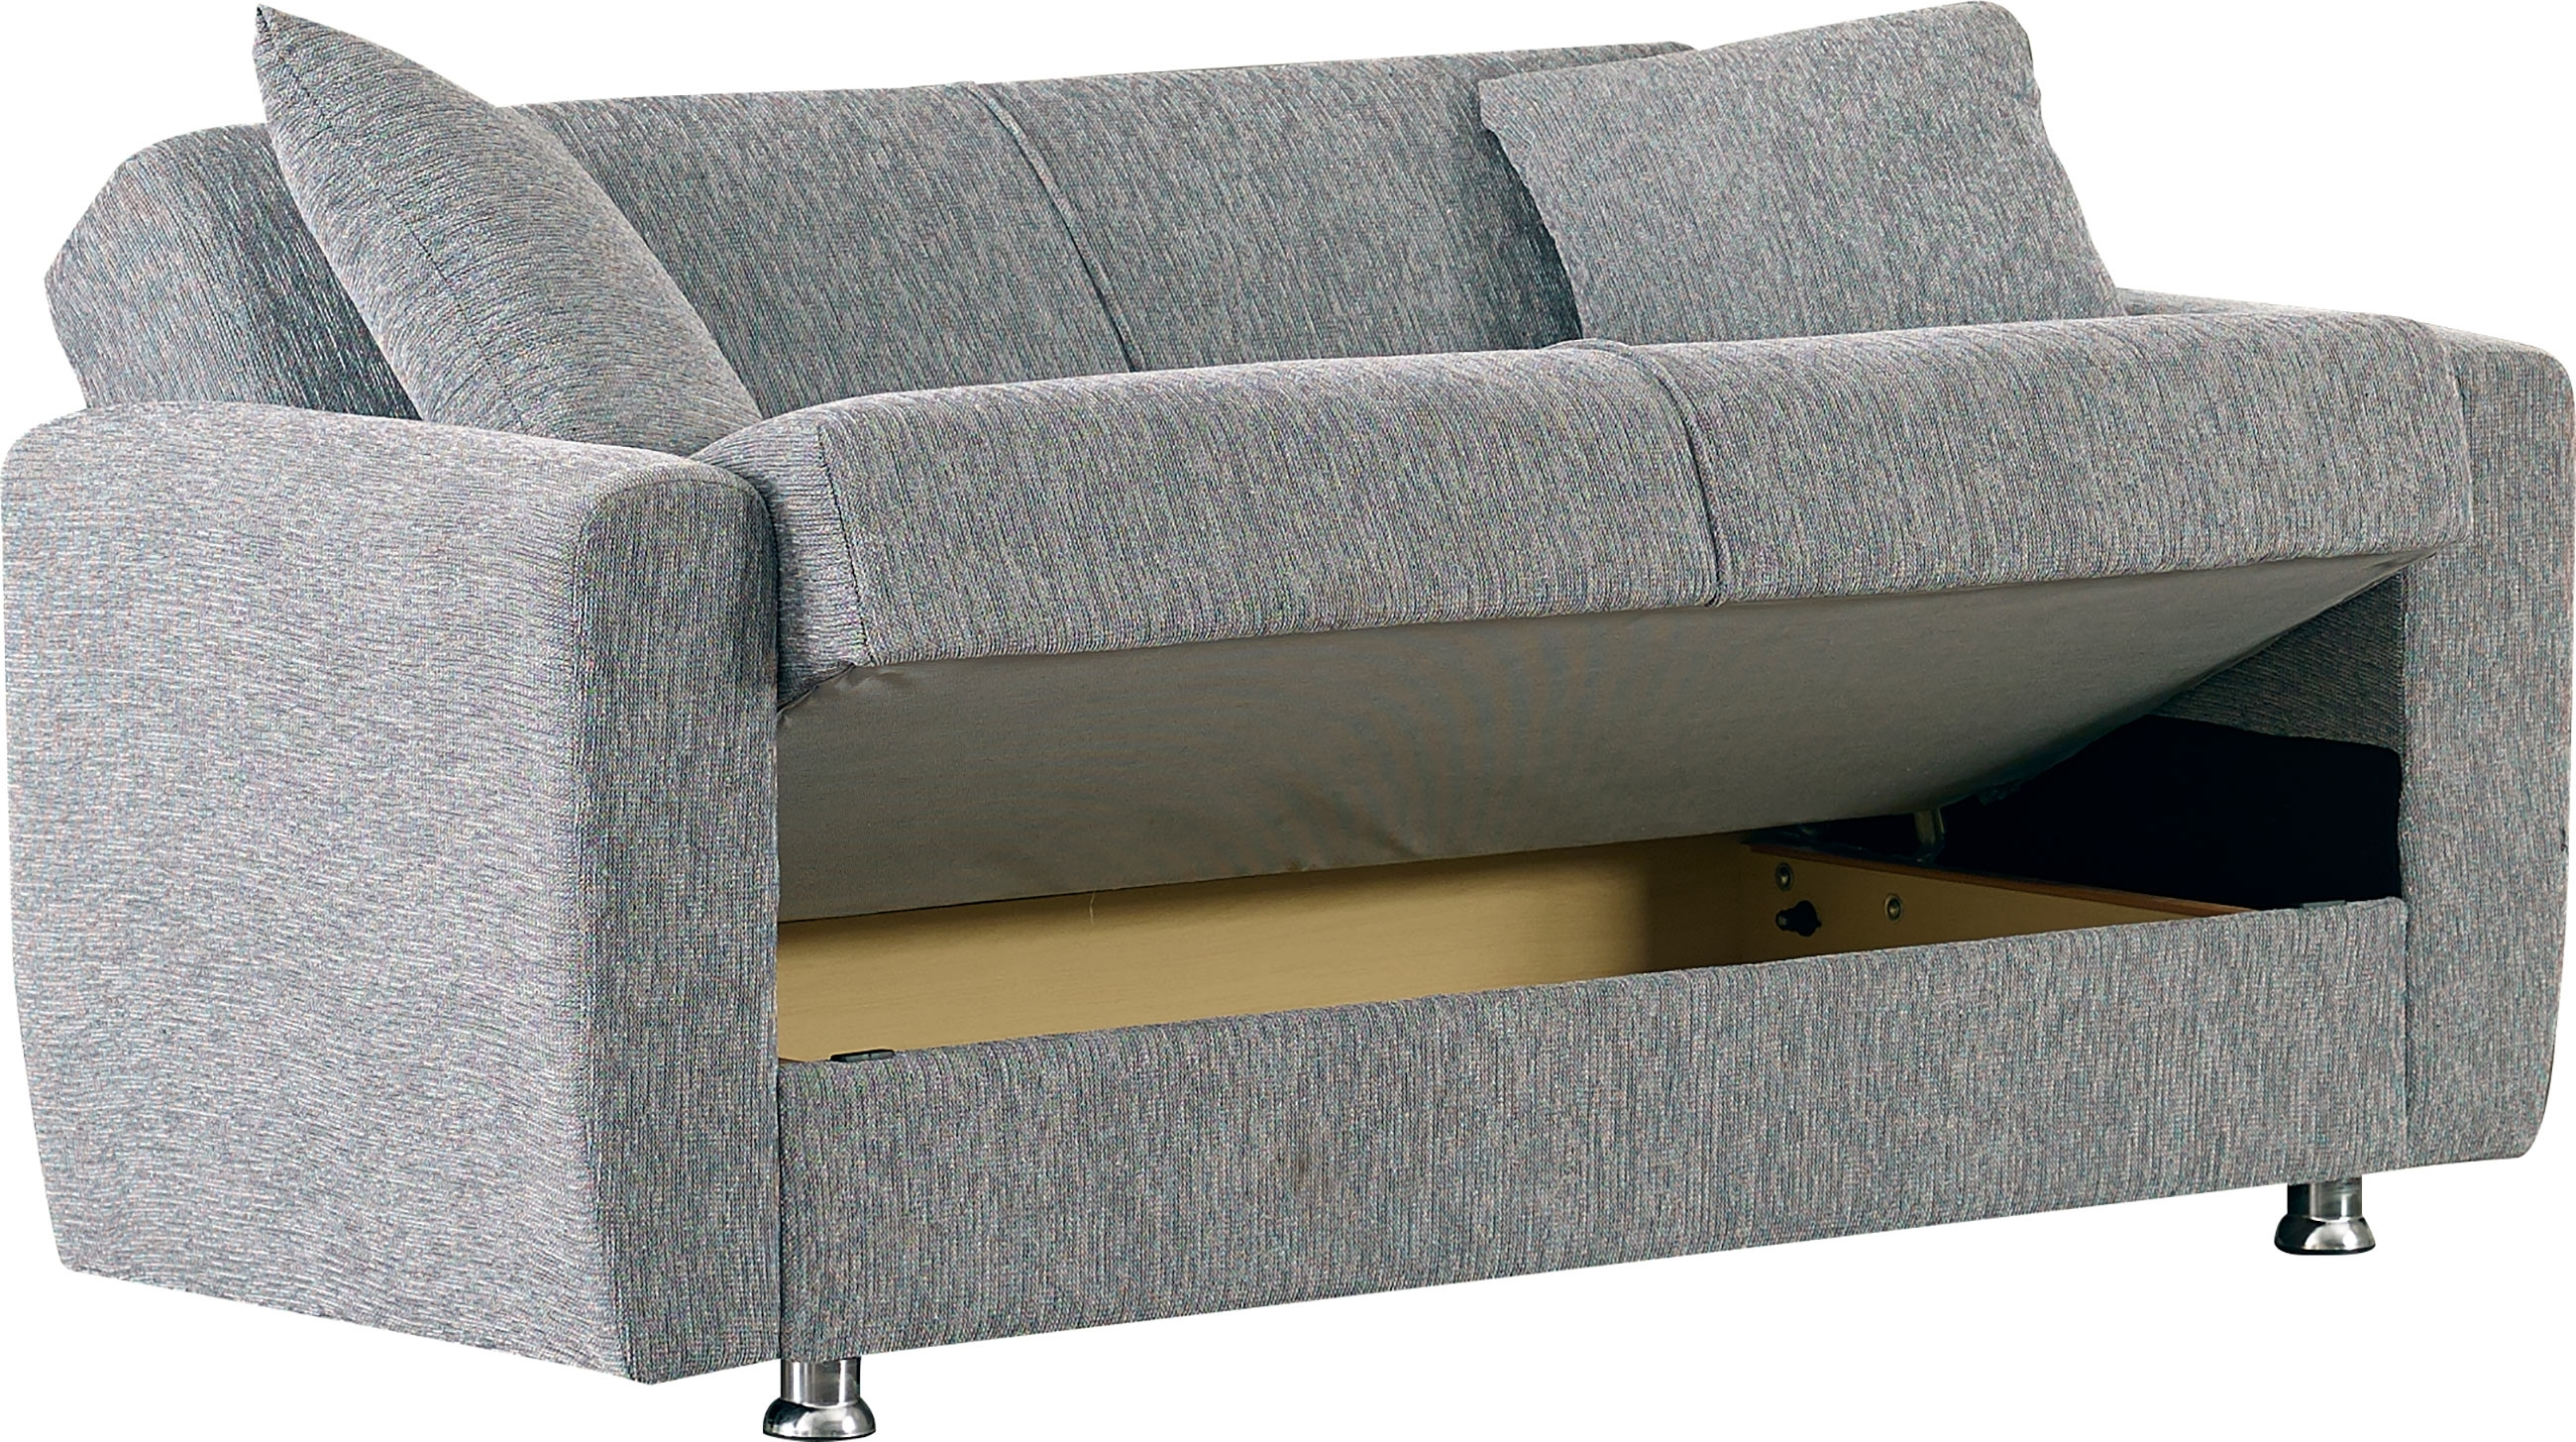 Current Niagara Sectional Sofas Pertaining To Niagara Gray Fabric Loveseatempire Furniture Usa (View 5 of 15)